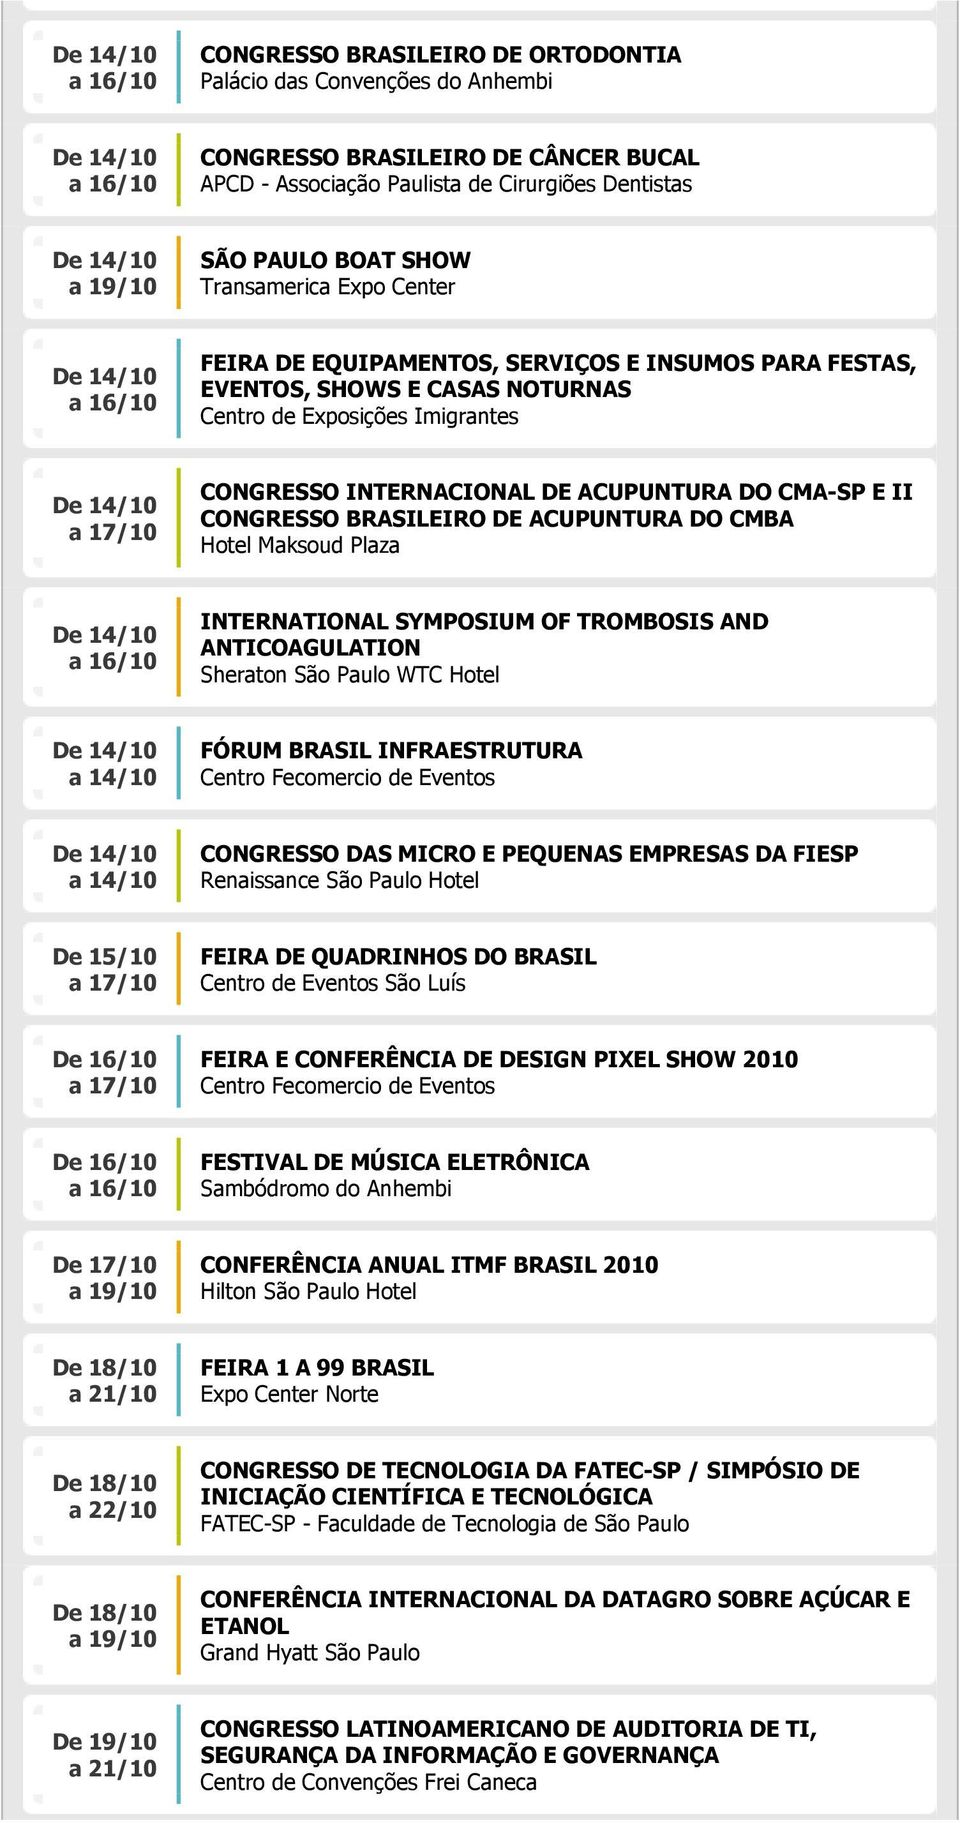 Hotel Maksoud Plaza INTERNATIONAL SYMPOSIUM OF TROMBOSIS AND ANTICOAGULATION Sheraton São Paulo WTC Hotel a 14/10 FÓRUM BRASIL INFRAESTRUTURA a 14/10 CONGRESSO DAS MICRO E PEQUENAS EMPRESAS DA FIESP